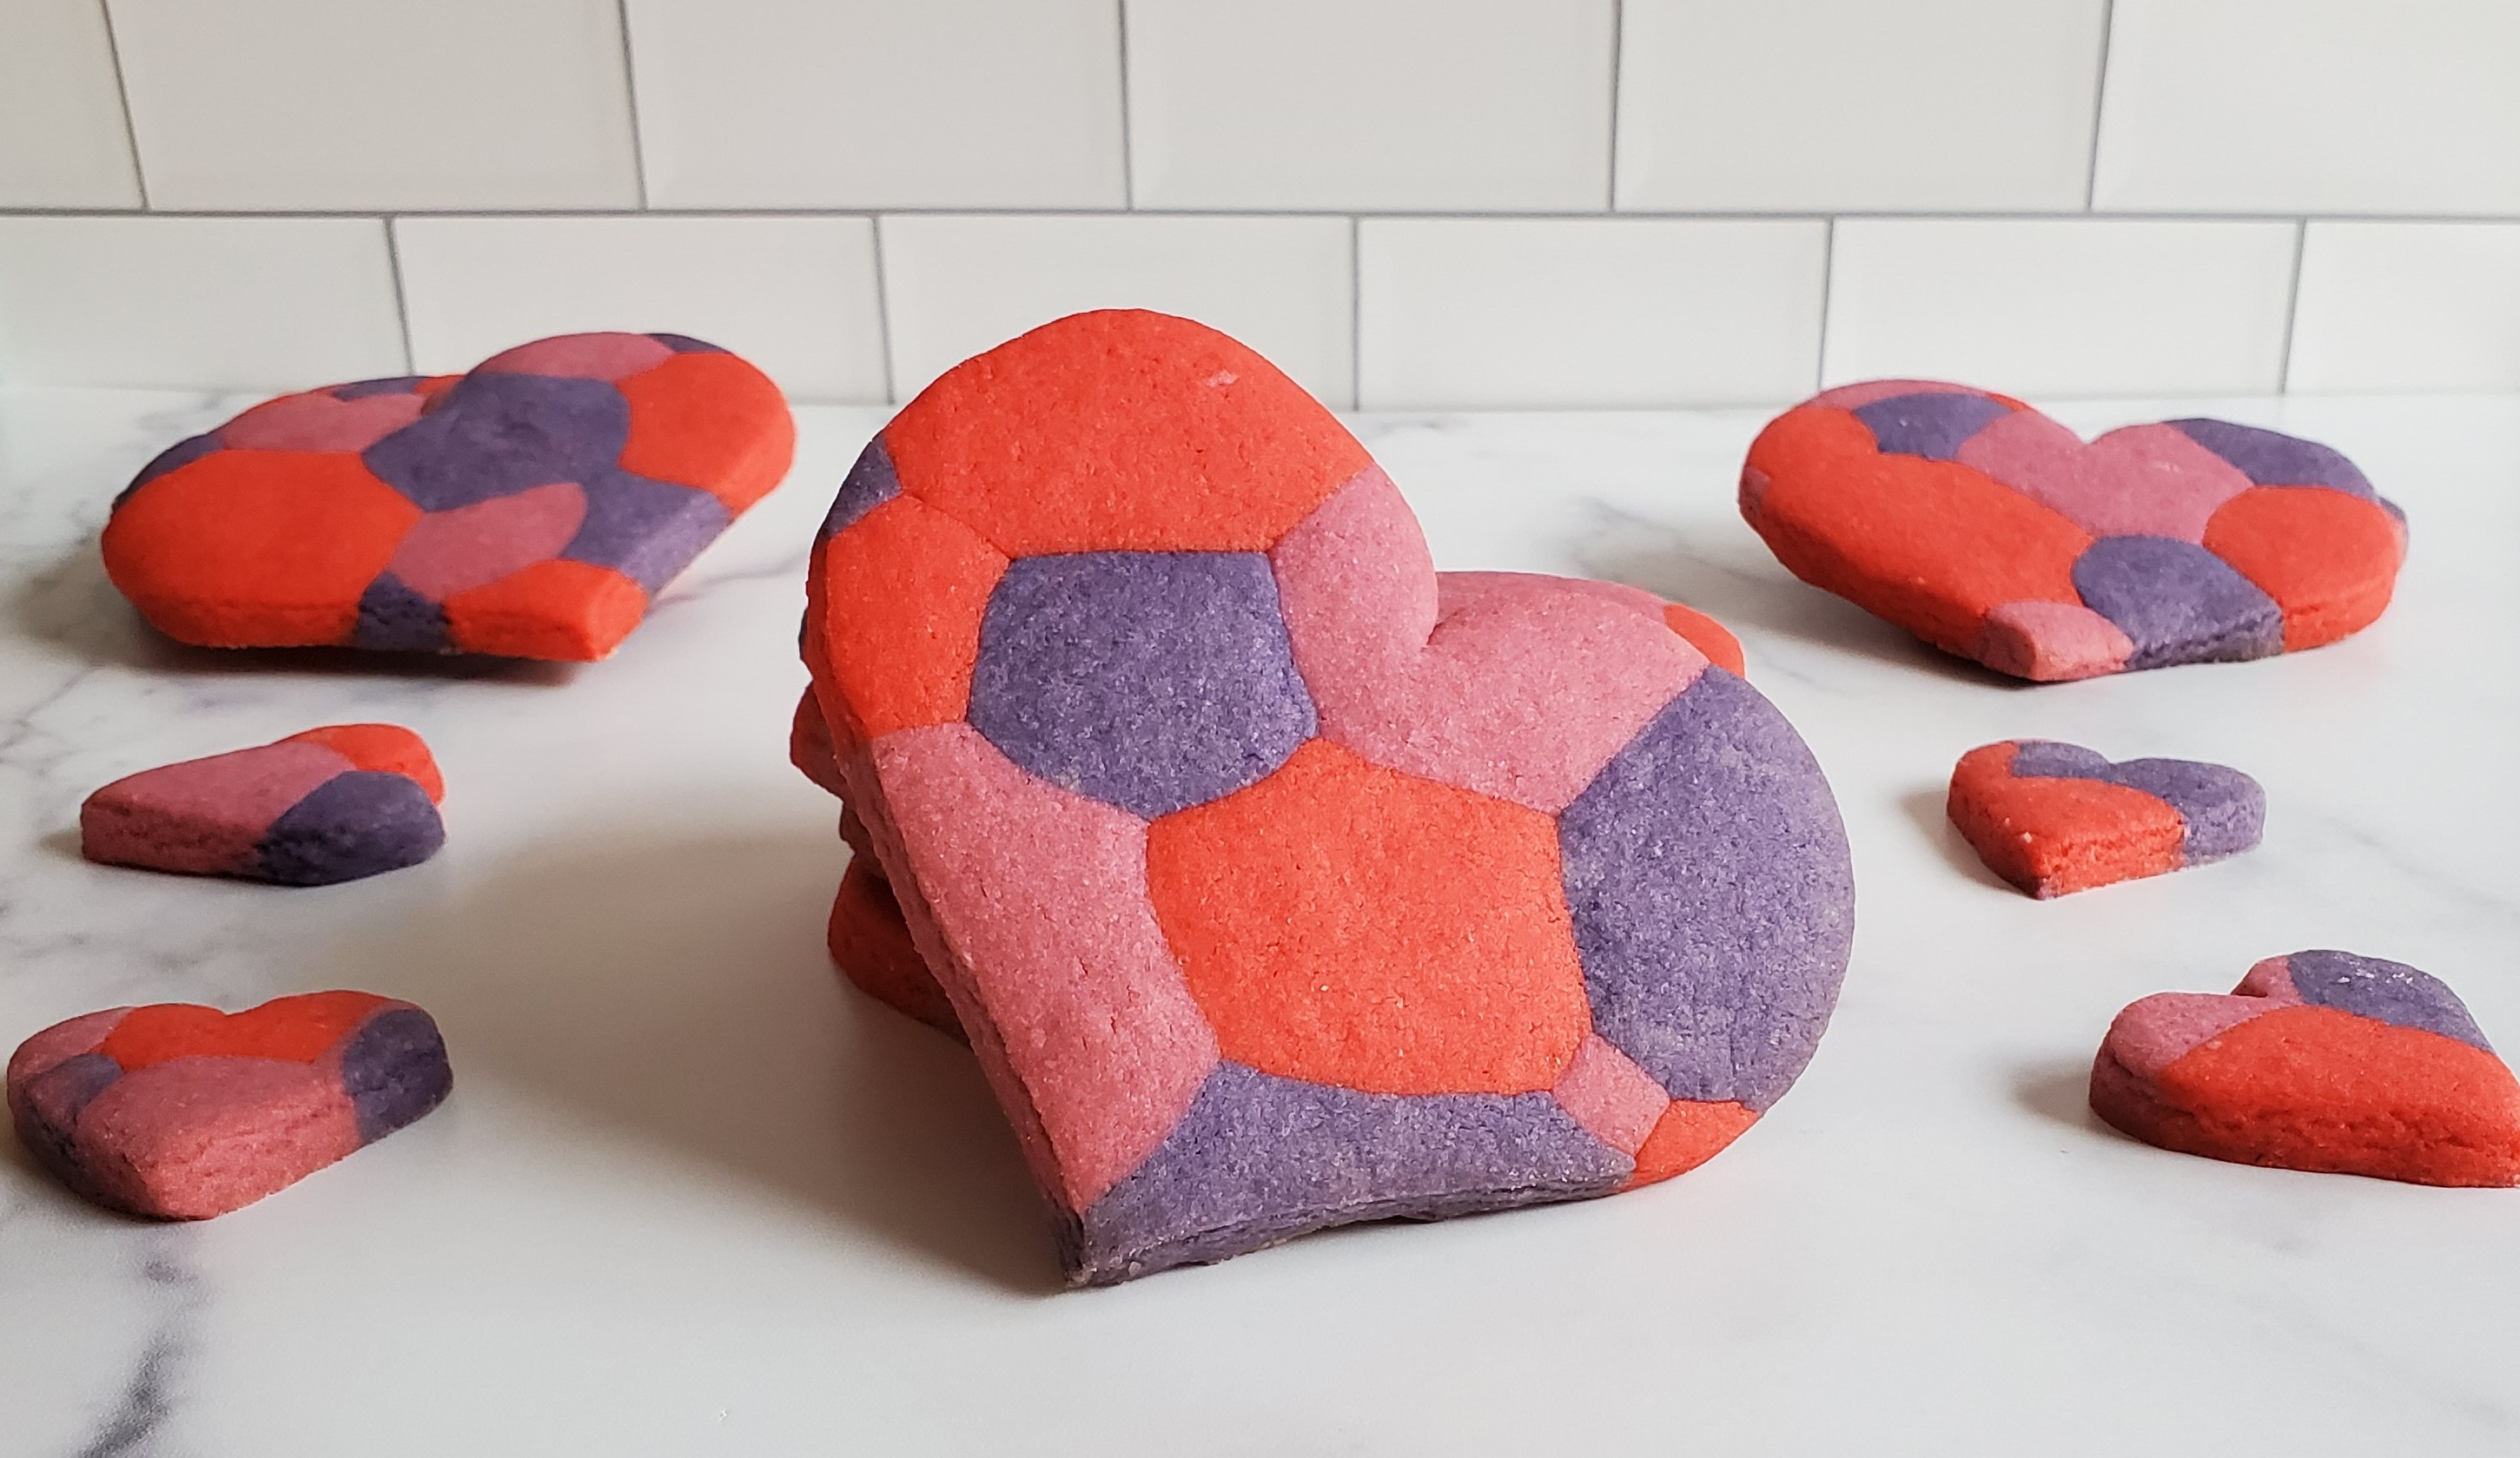 A large heart shaped sugar cookie with a marbled/mosaic pattern sits resting against a stack of more of the same cookies. On the sides we see slightly smaller heart shaped cookies of the same pattern. There are more large cookies in the back slightly propped up. All of this is on a white marble countertop against a subway tile backsplash.